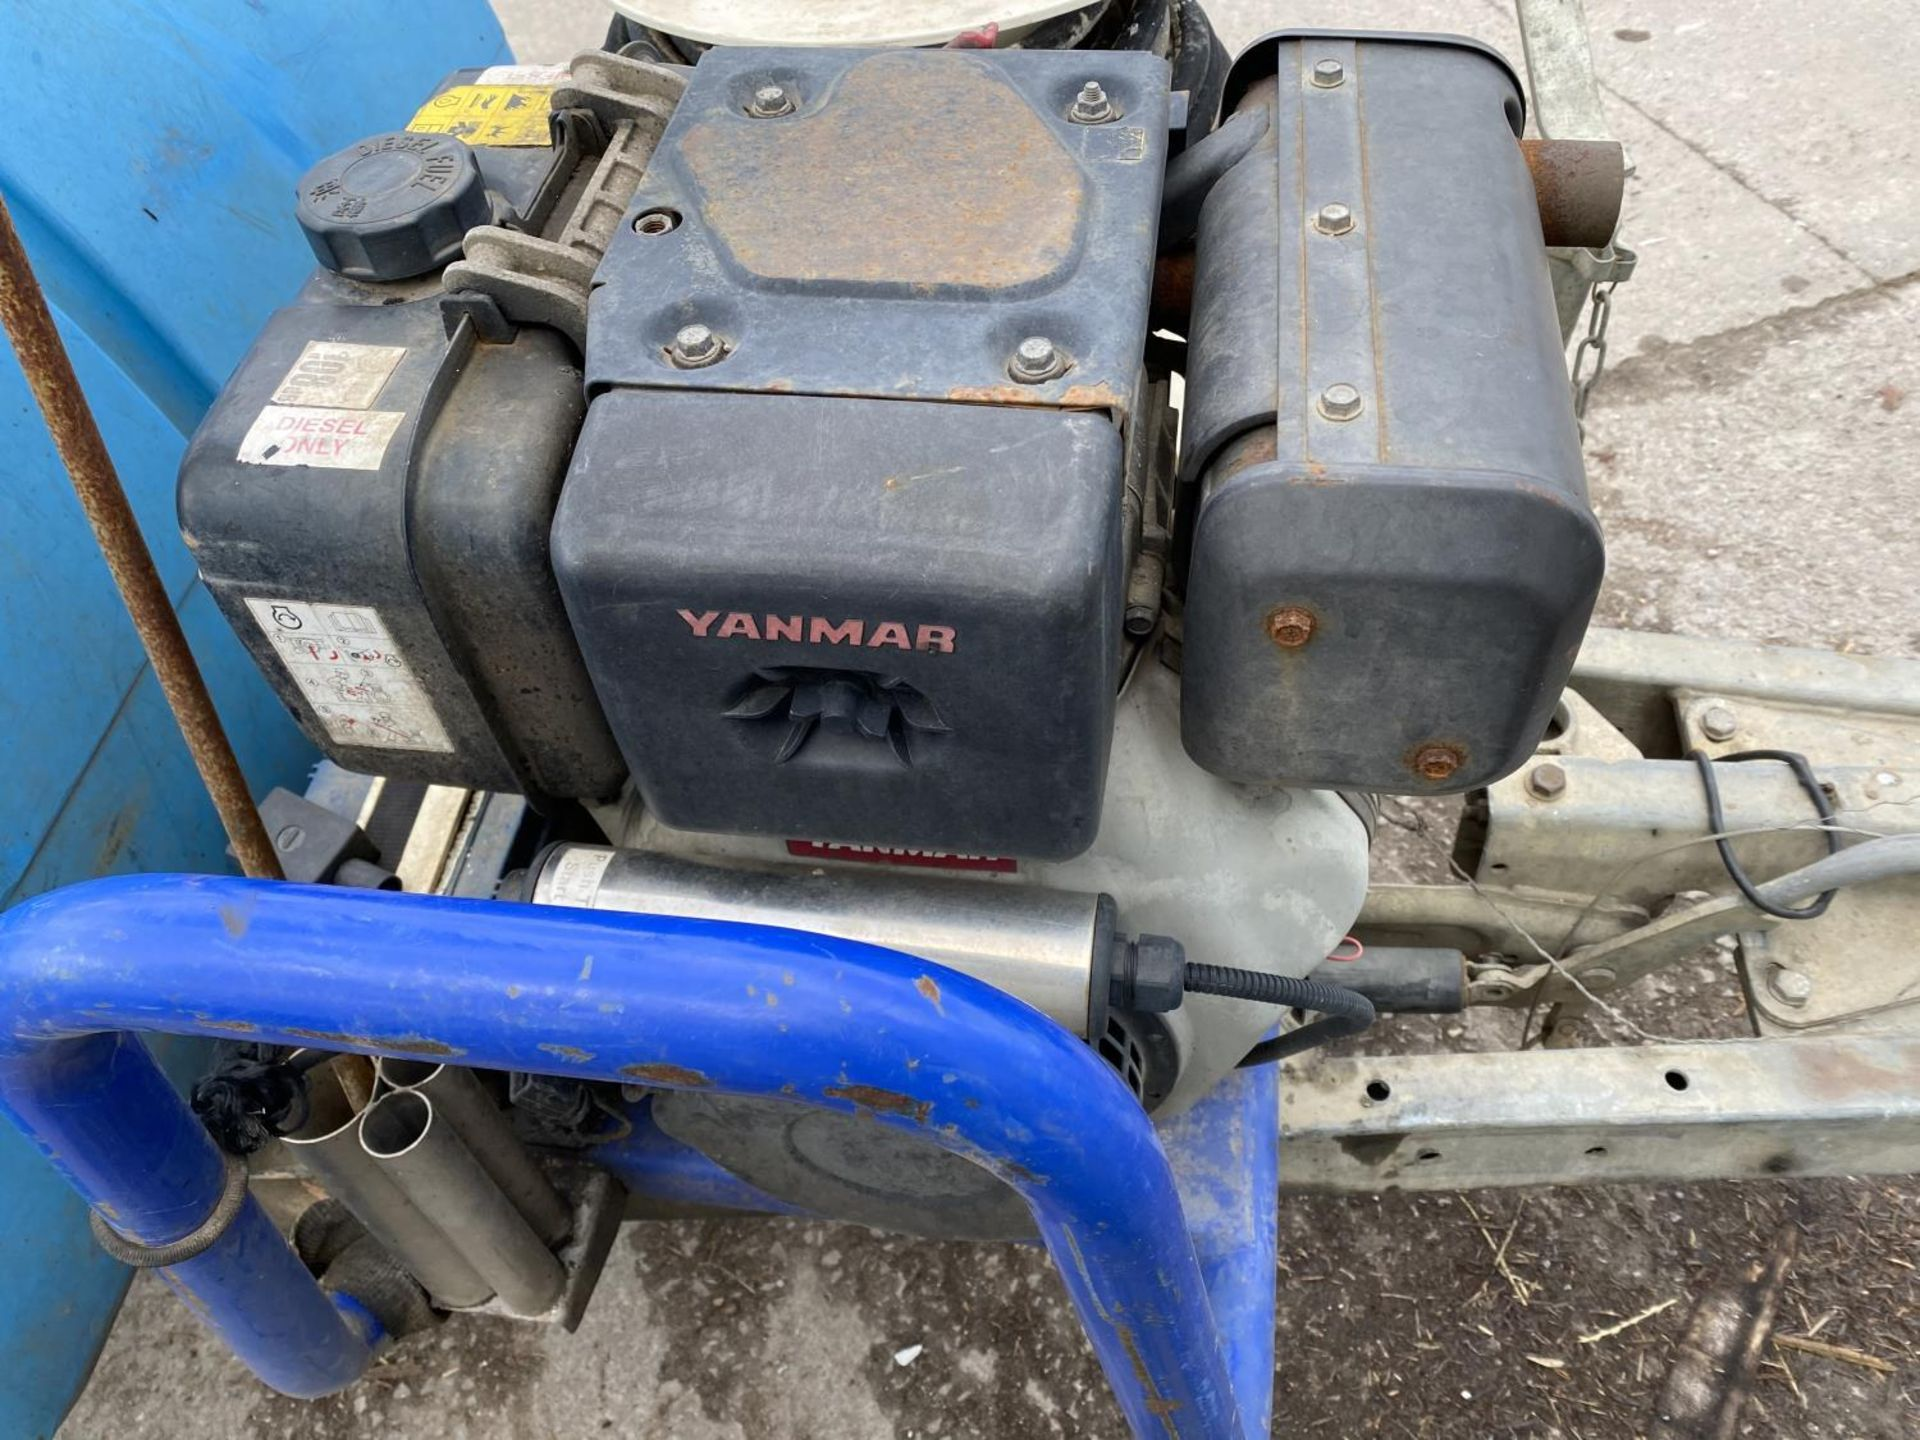 A MOBILE JET WASHER WITH DIESEL ENGINE BELIEVED WORKING NO WARRANTY - NO VAT - Image 3 of 5